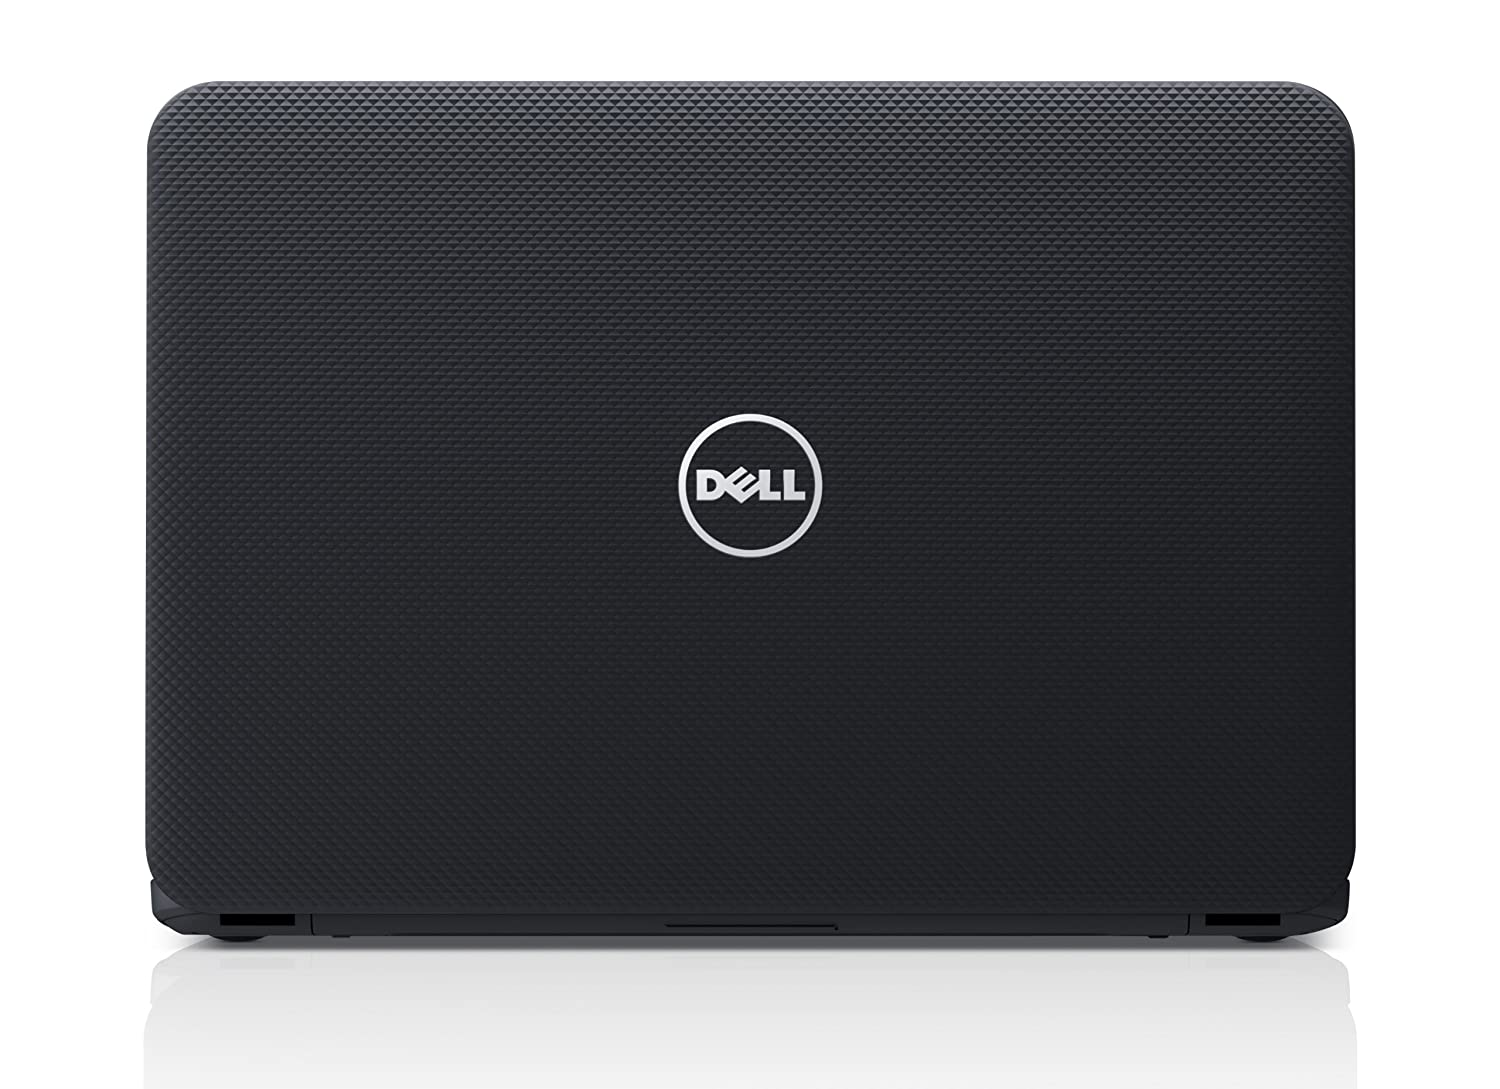 Dell-Inspiron-15-i15RV-6190BLK-15-6-Inch-Laptop-Black-Matte-with-Textured-Finish-